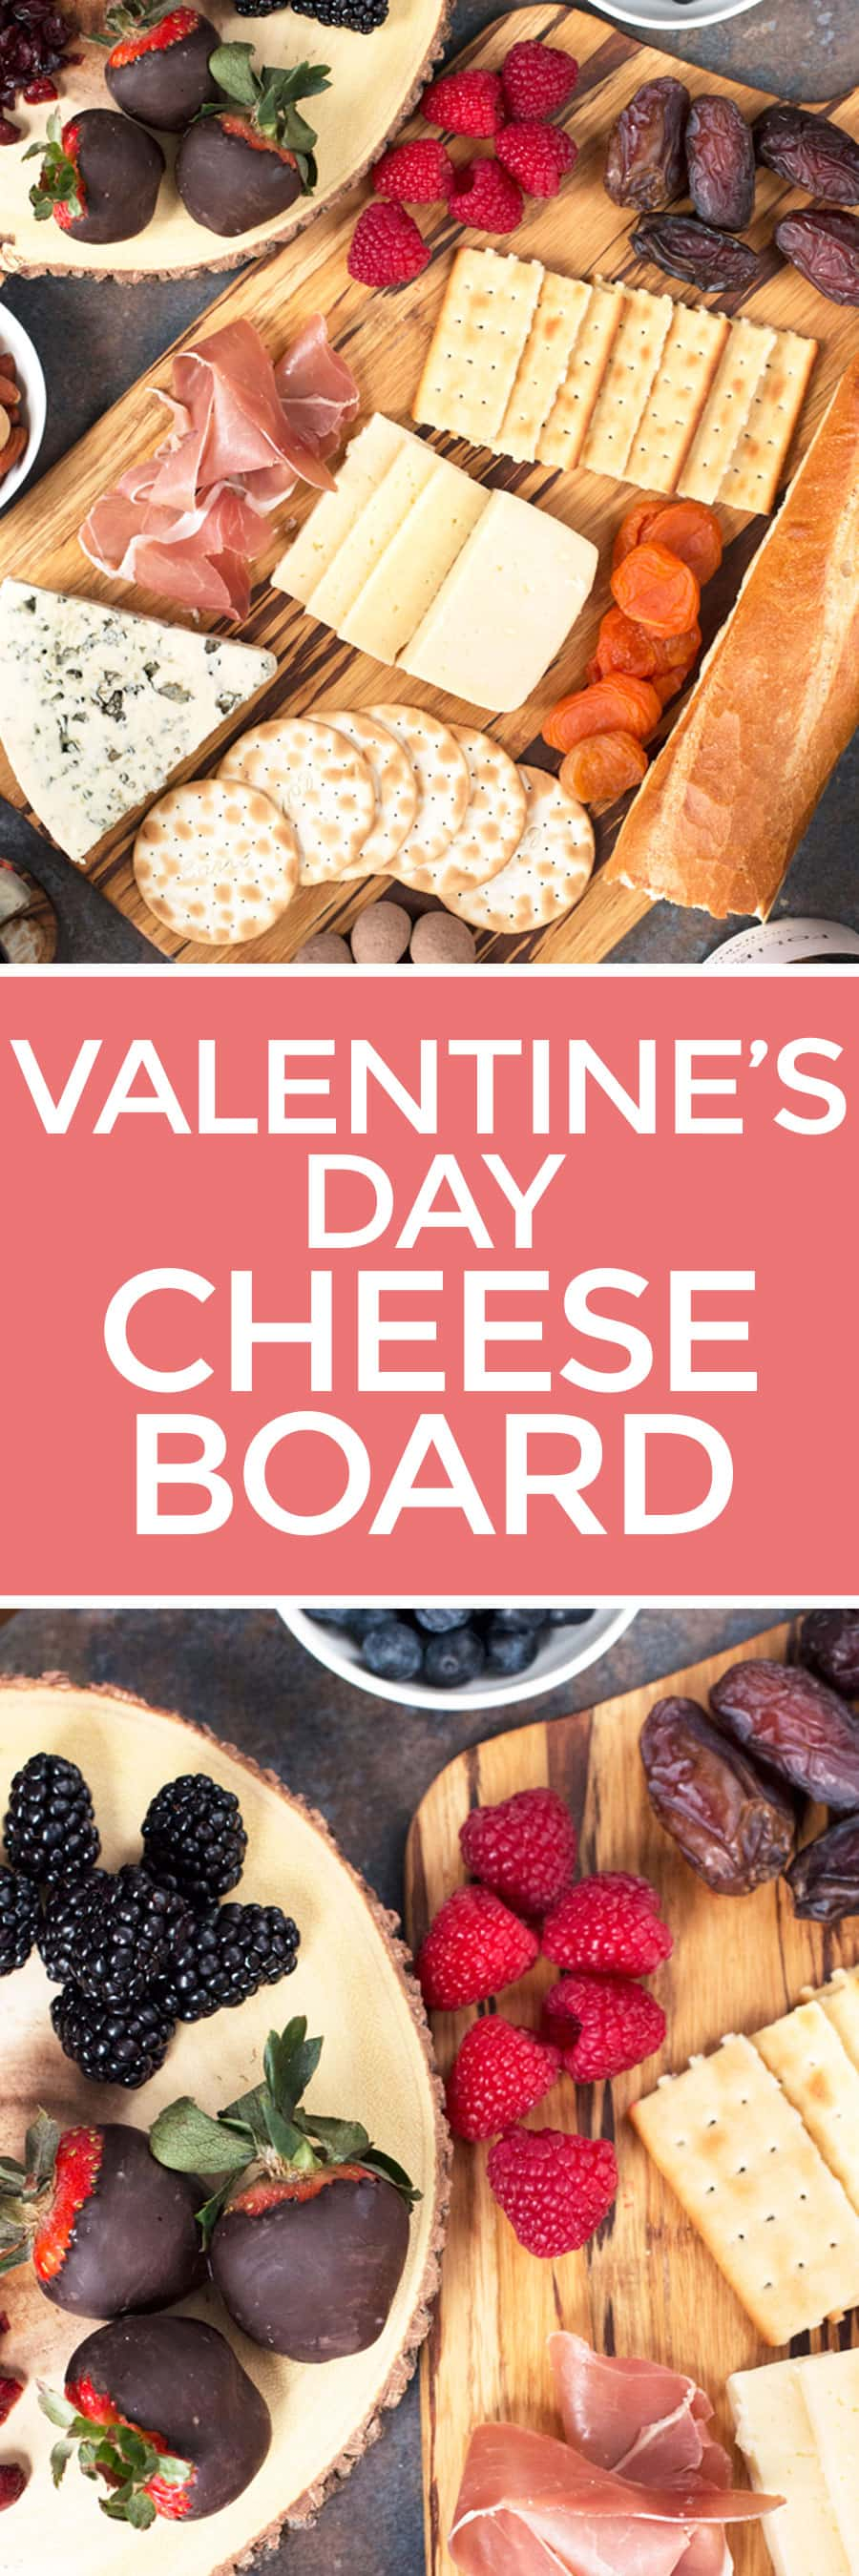 Valentine's Day Cheese Board | cakenknife.com